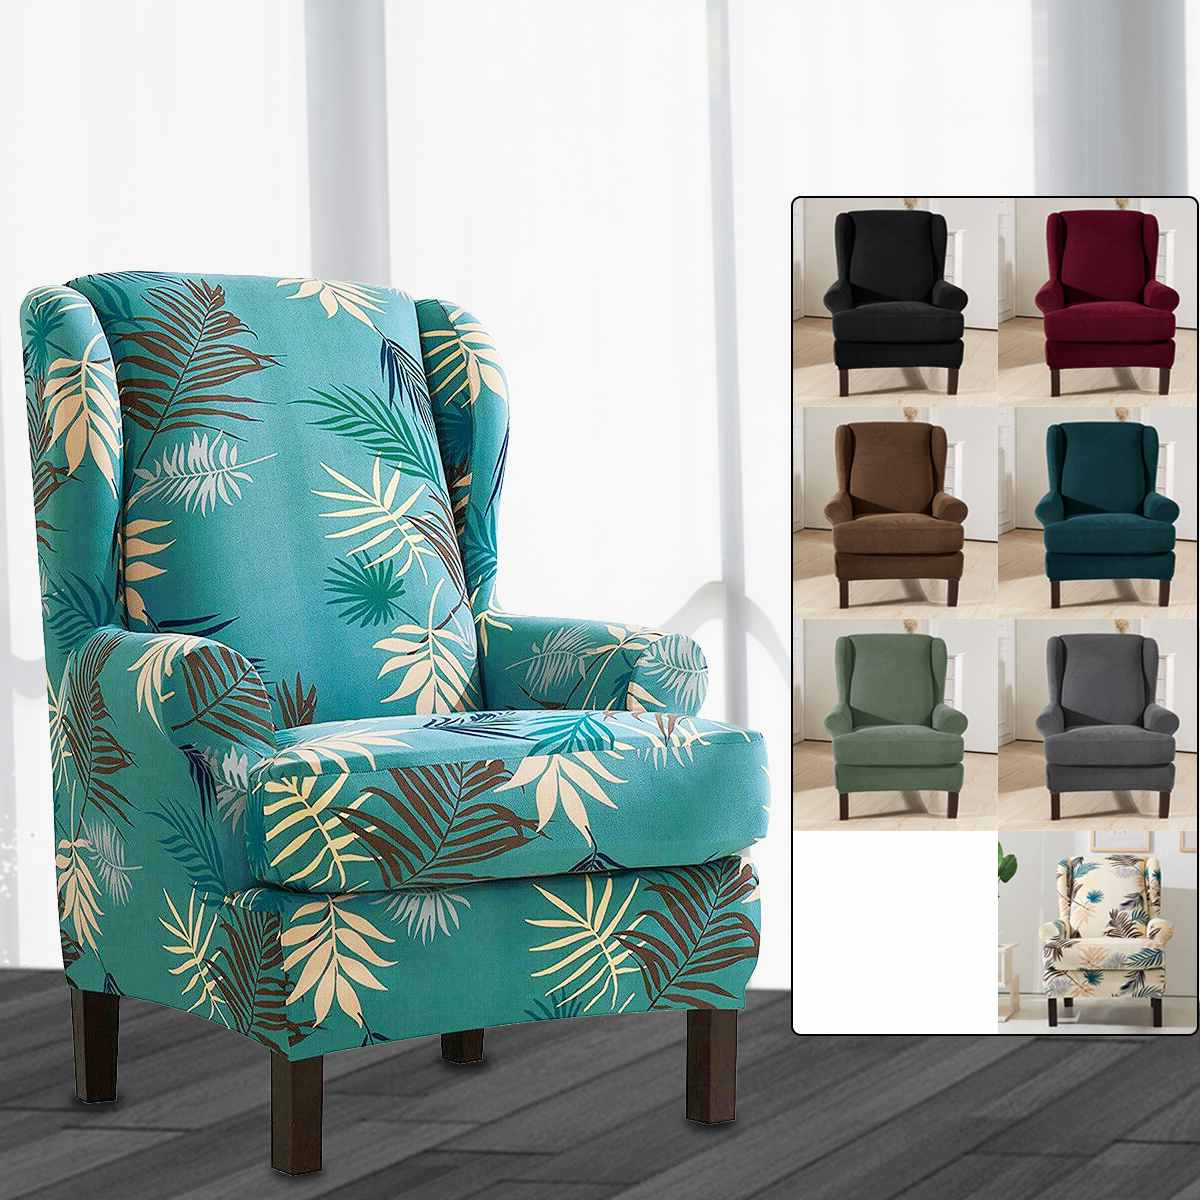 Armchair Slipcovers Home Kitchen 2 Pieces Stretch Wing Chair Slipcover Wingback Armchair Chair Slipcovers Sofa Covers Leaves Printed Wing Back Chair Slipcovers